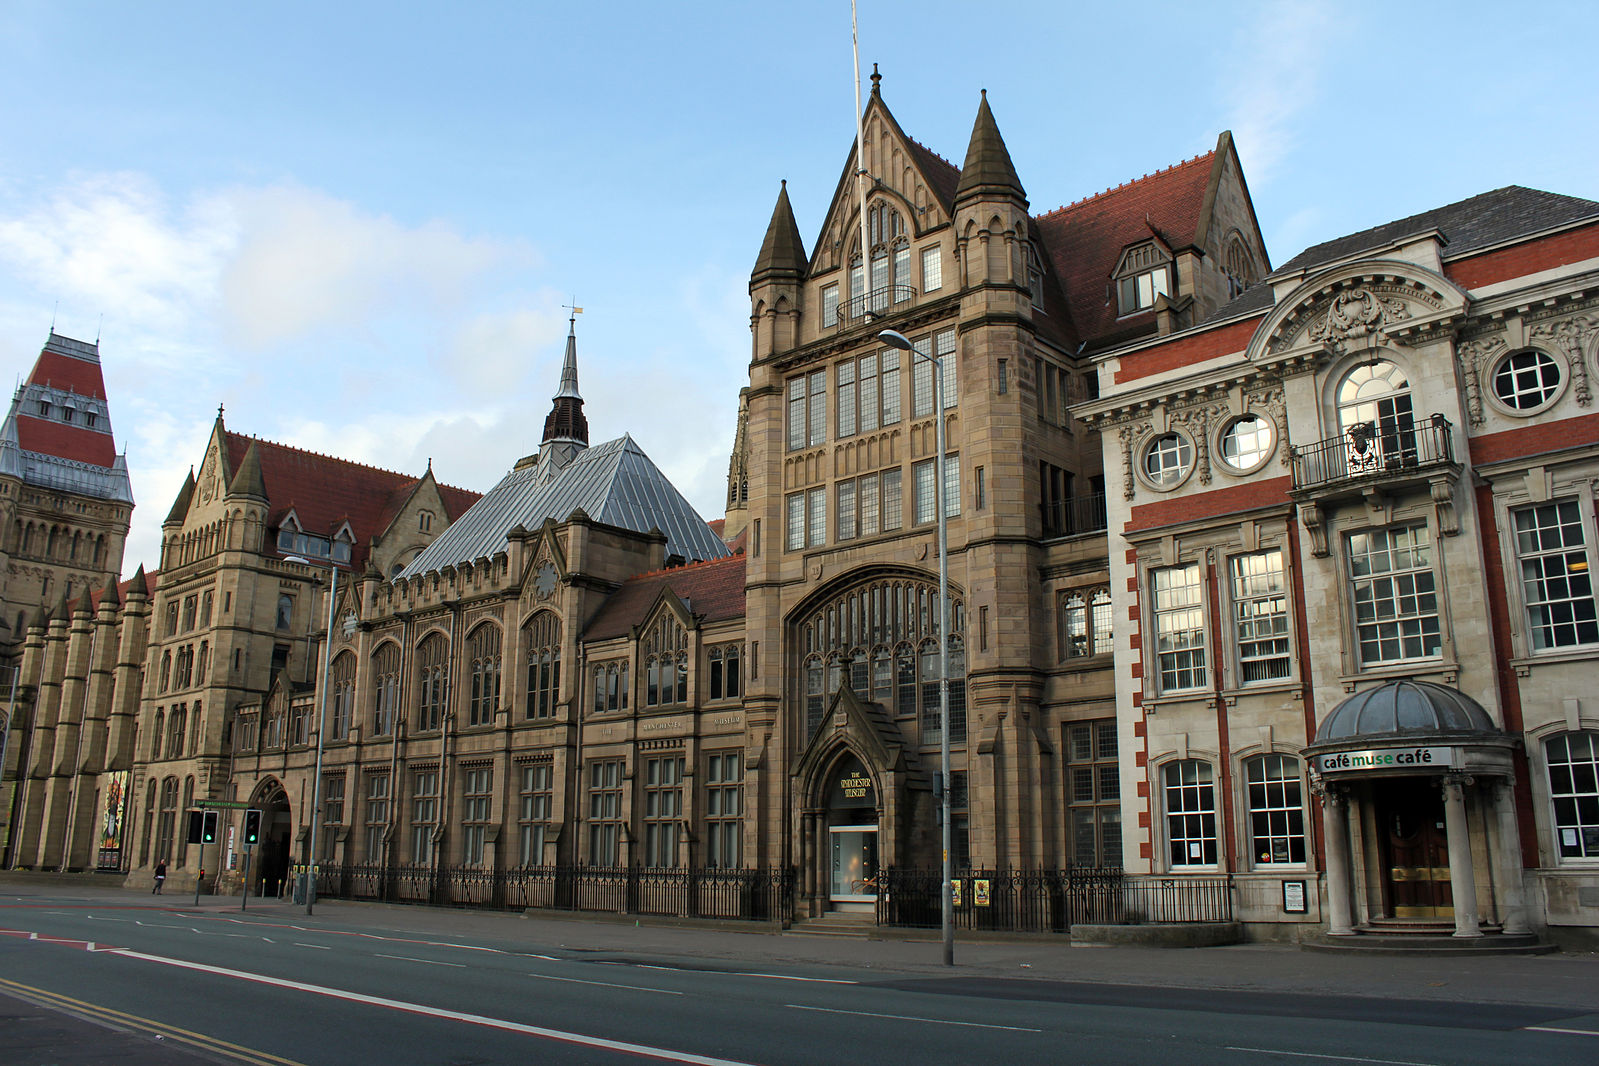 21 arts and culture venues reopening in Manchester over the next few months, The Manc